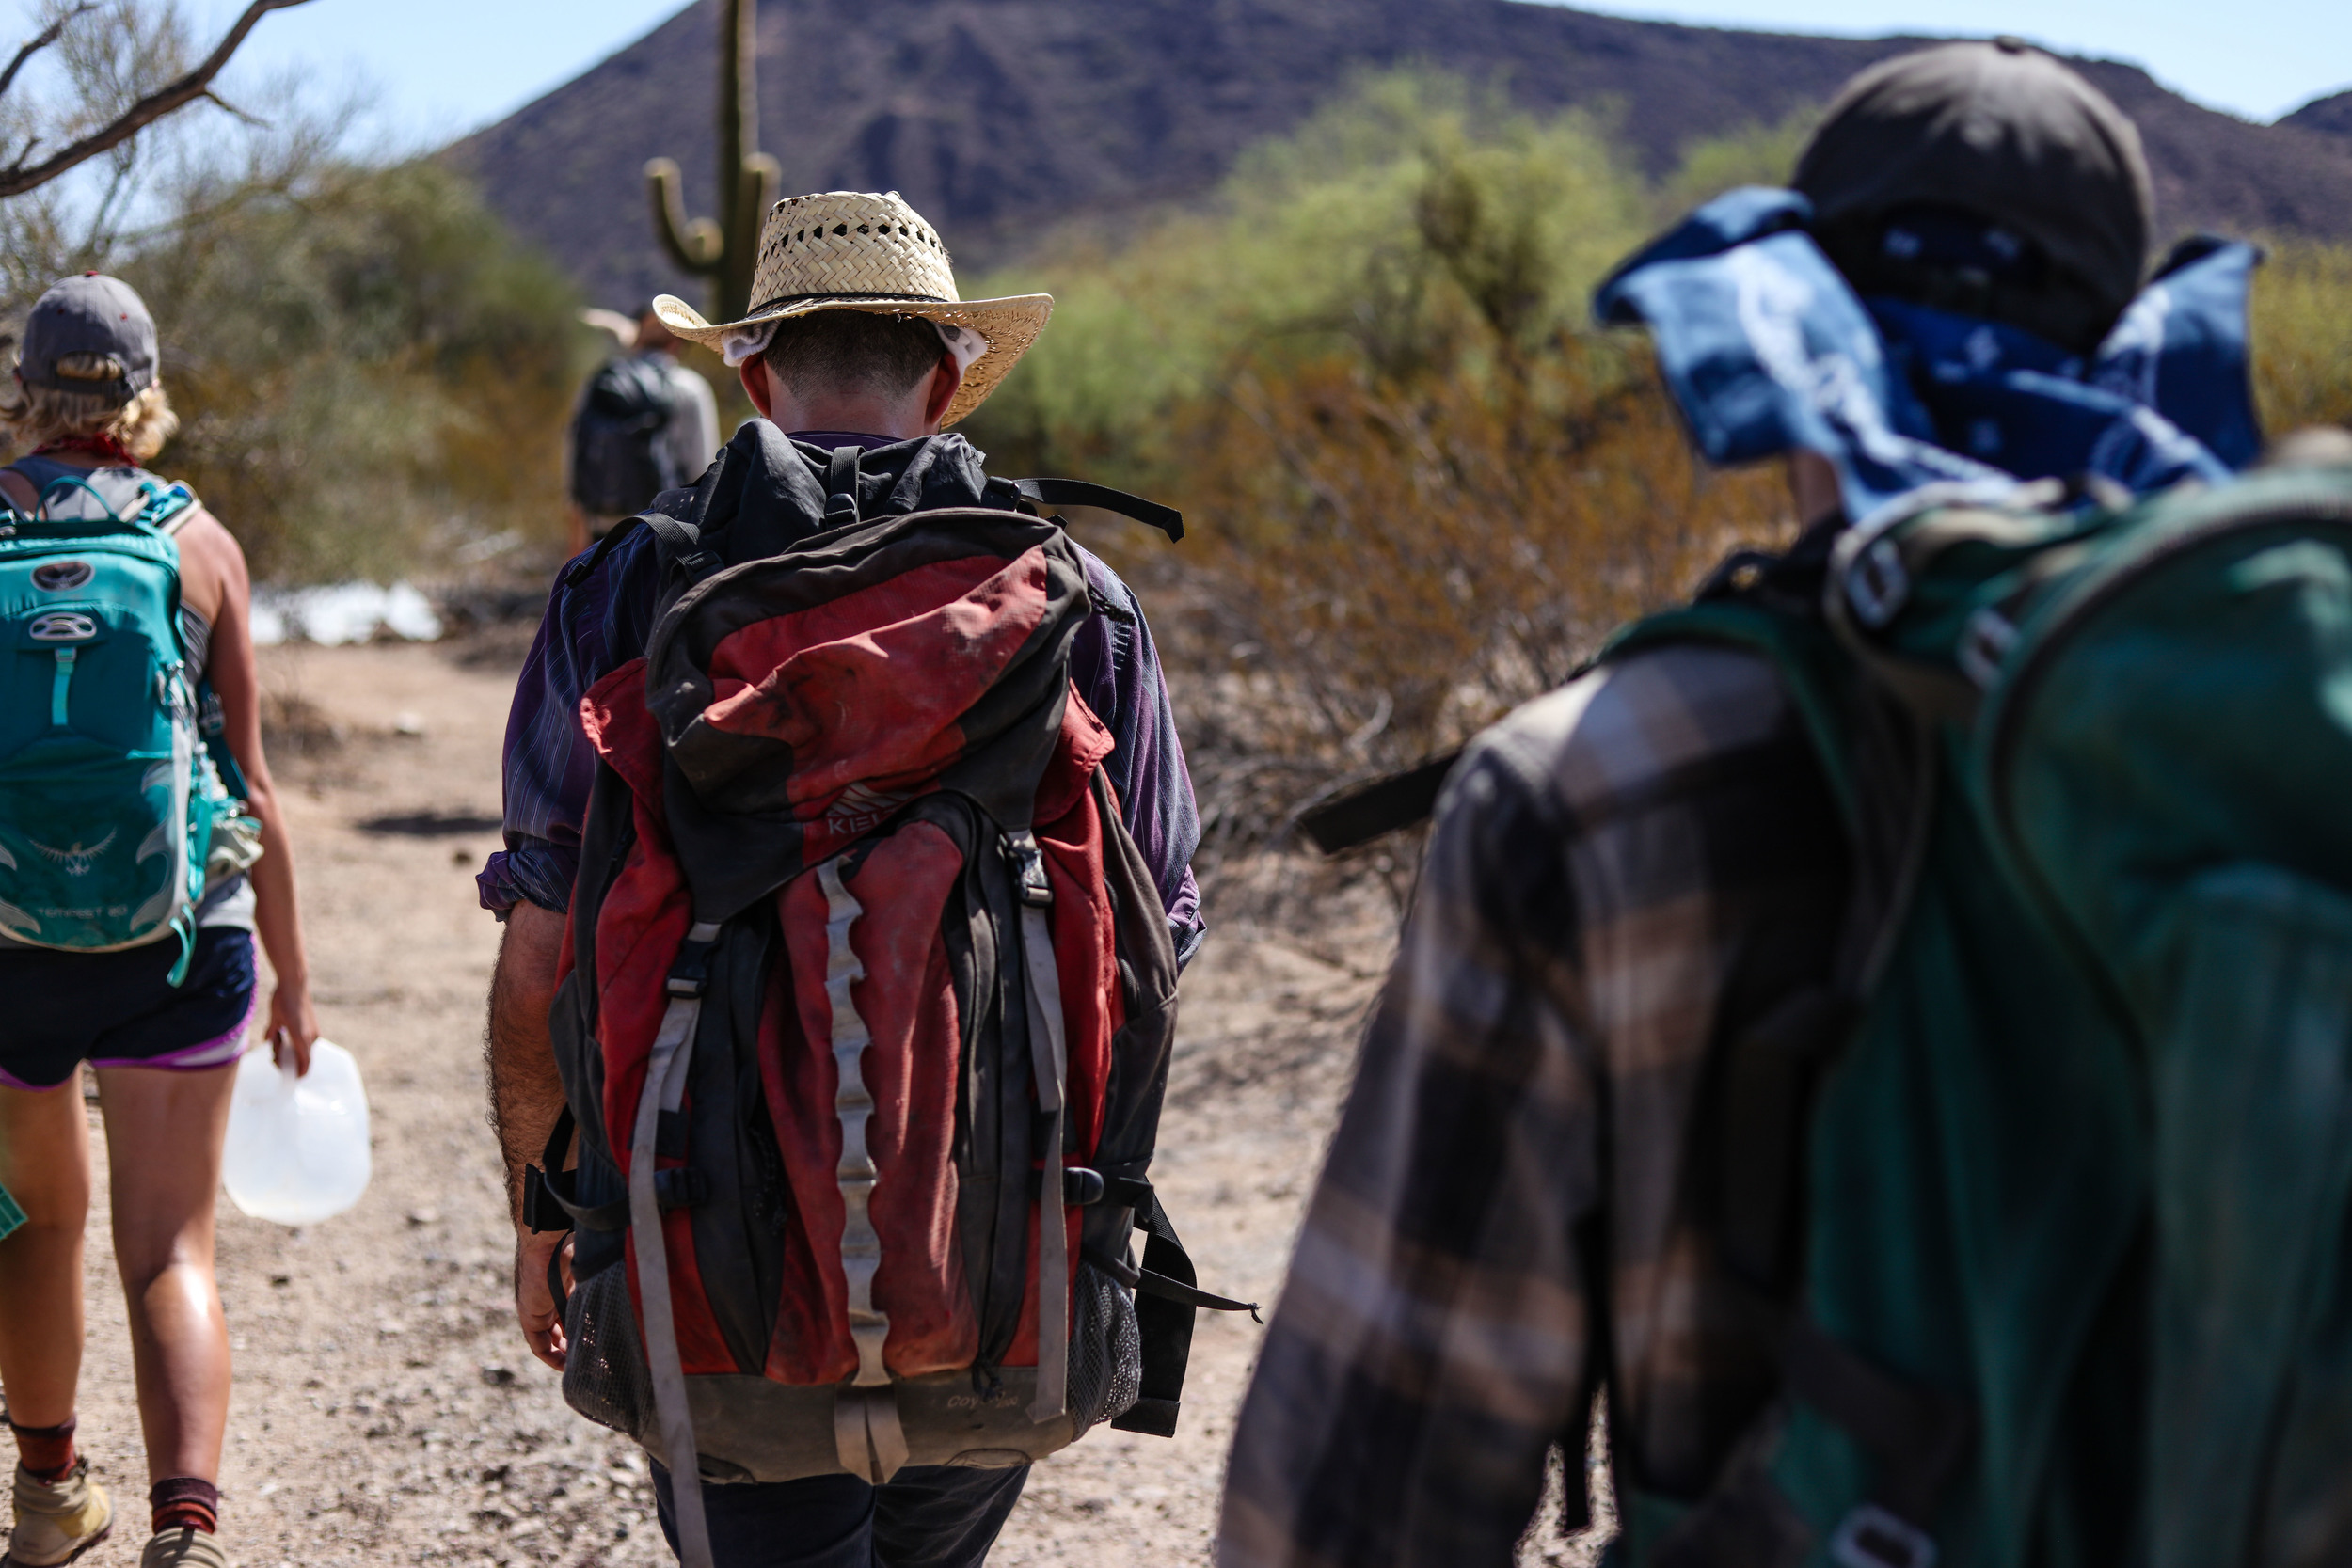 Hat, check. Hiking shoes, check. Backpack, check. Sunscreen, check.